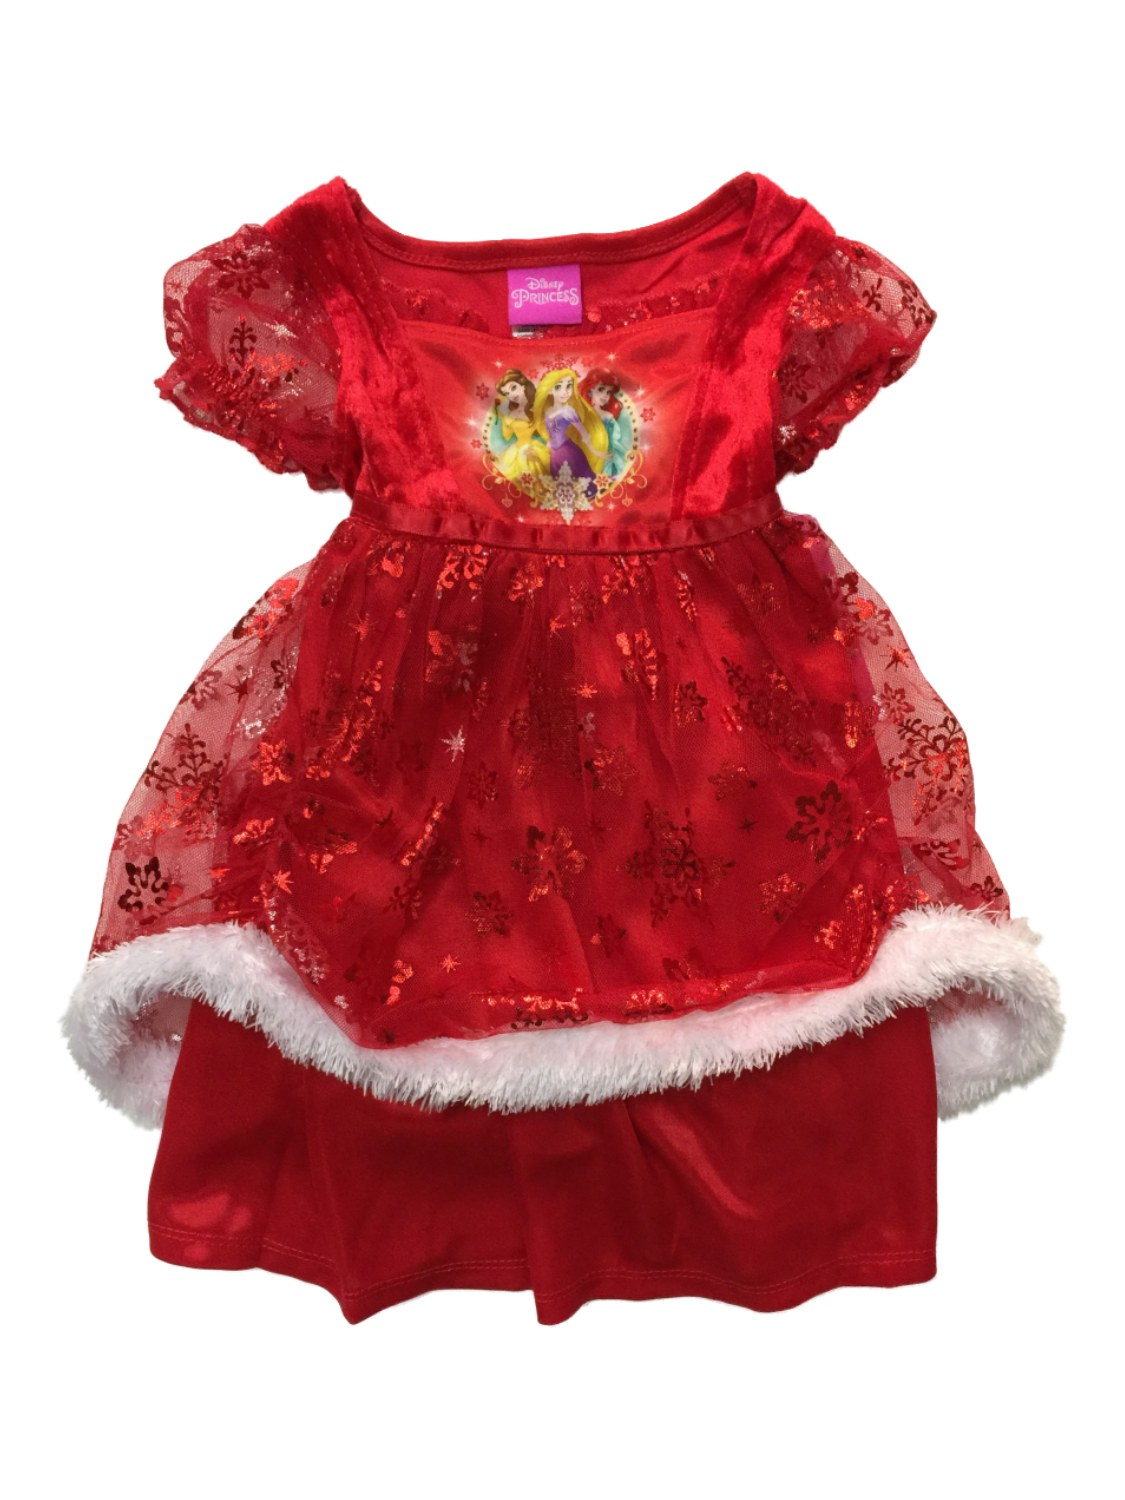 Infant & Toddler Girls Silky Red Disney Princess Nightgown Holiday Gown